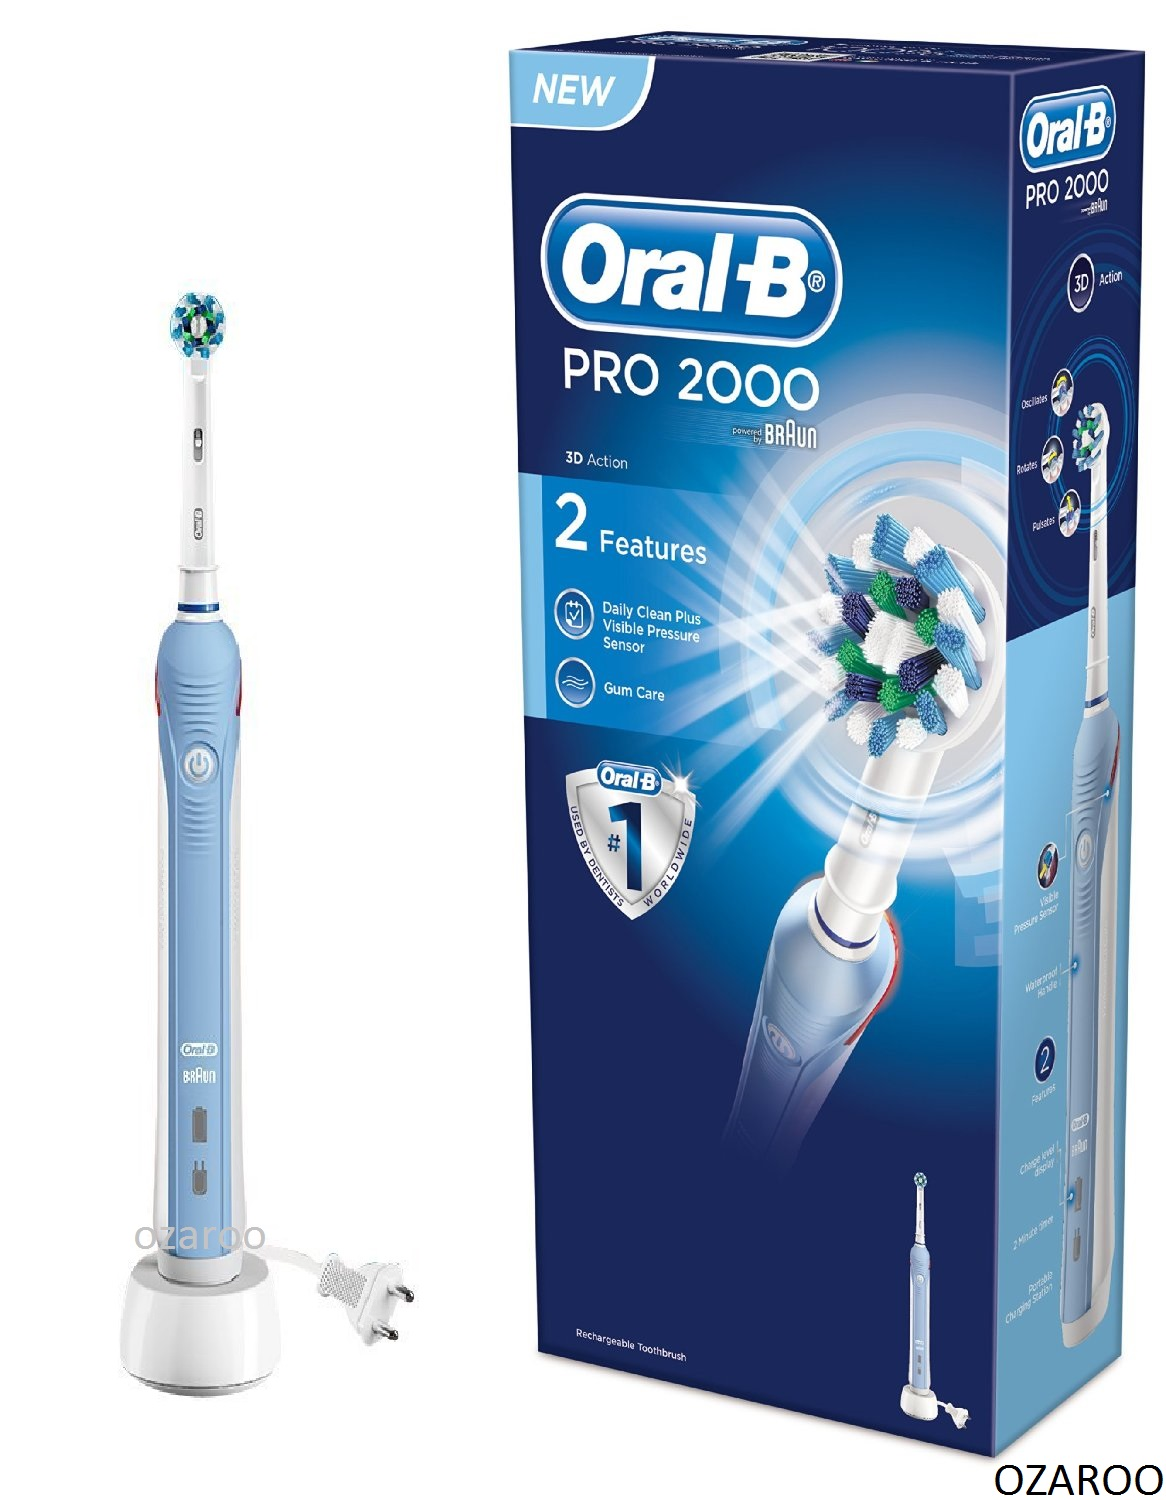 Braun Oral-B PRO 2000 CrossAction 3D 2-Mode Rechargeable Electric Toothbrush